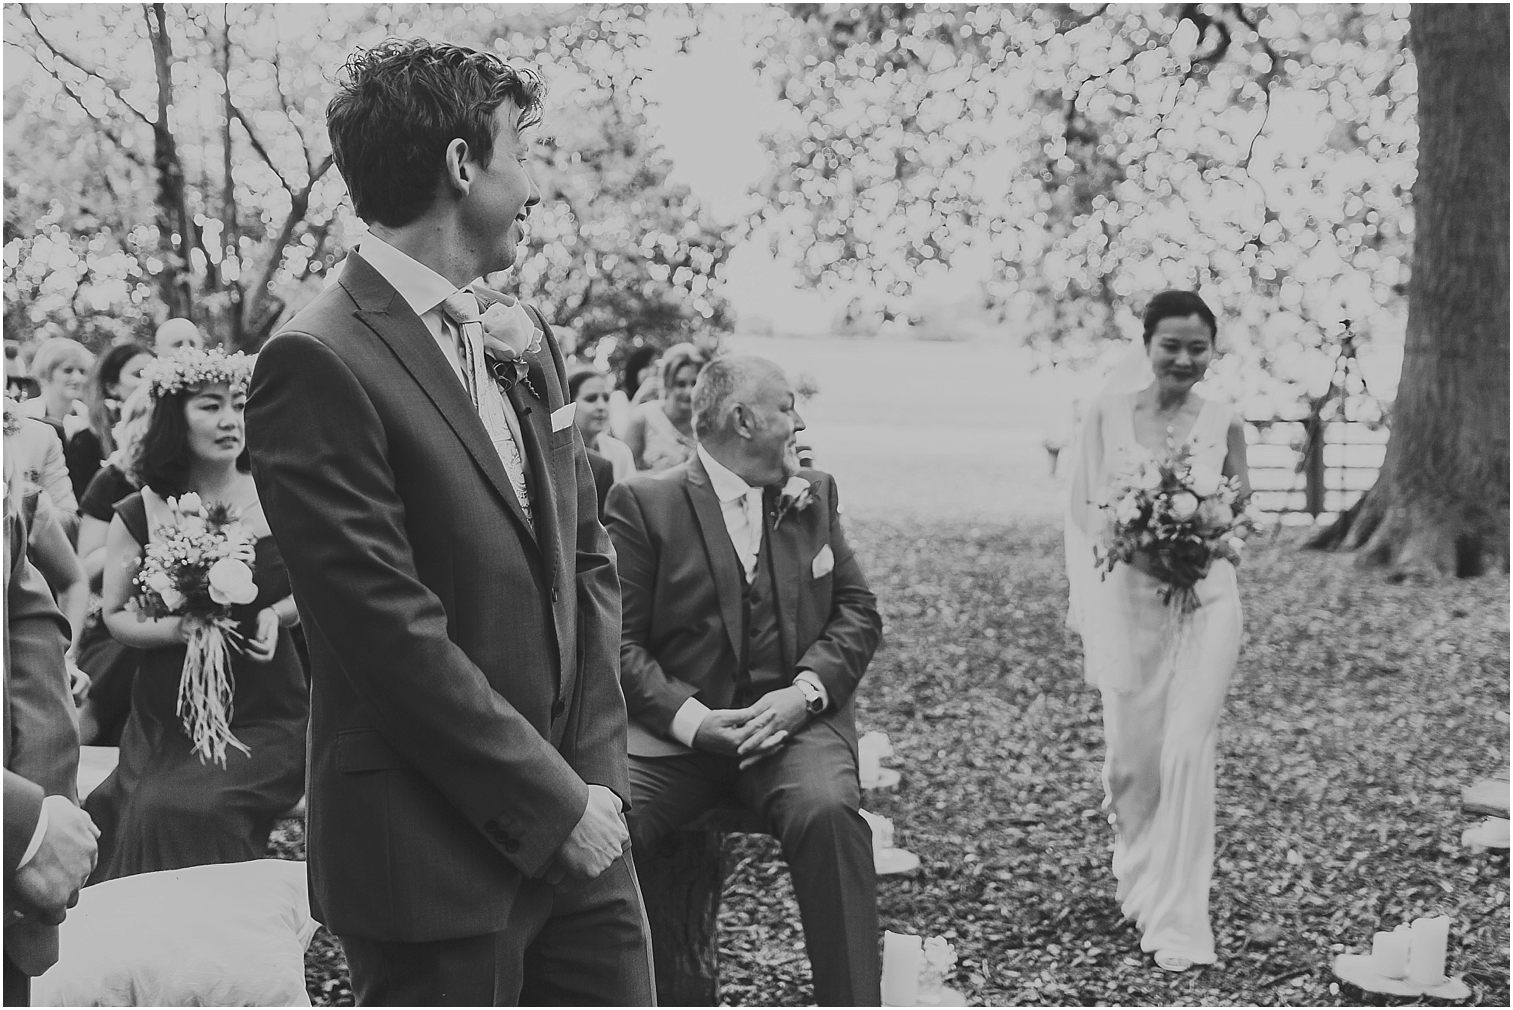 Groom's reaction to his bride walking down the aisle